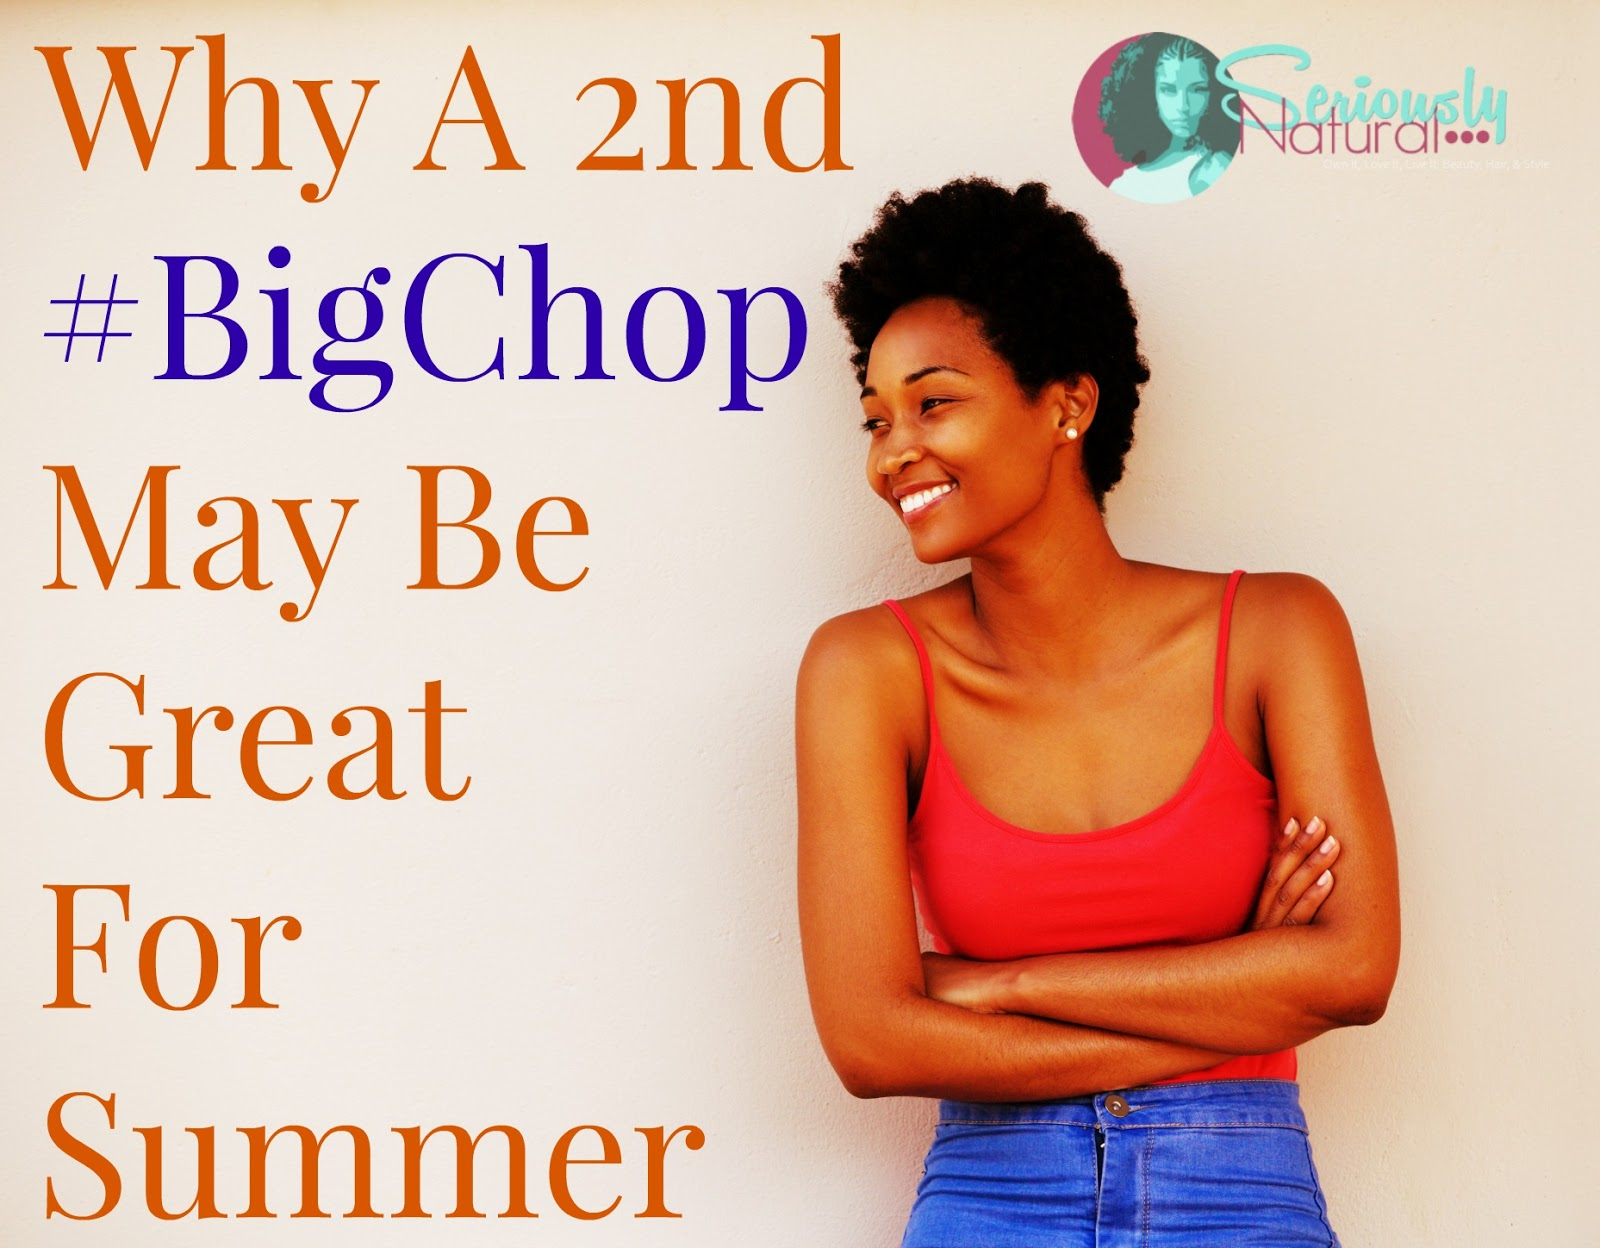 Why A 2nd #BigChop May Be Great For Summer